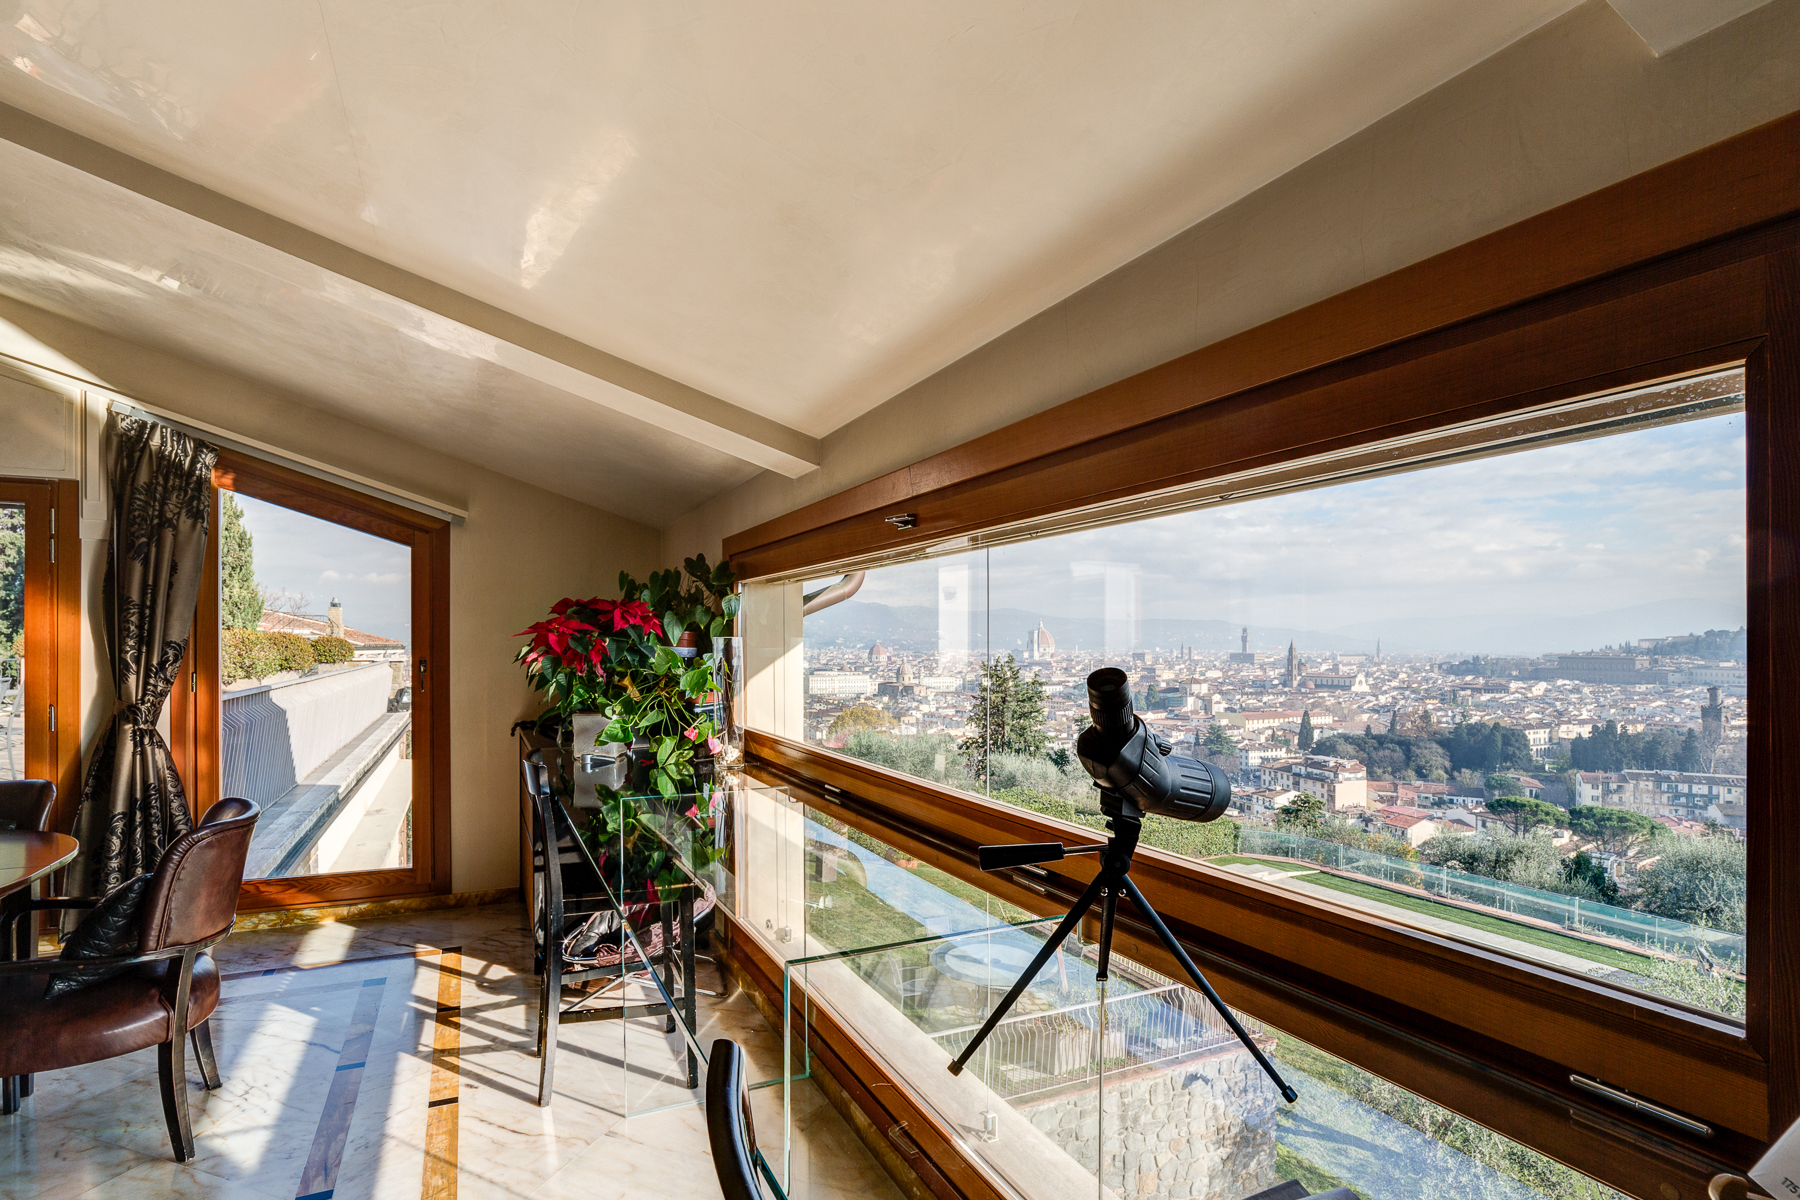 Additional photo for property listing at A truly unique villa with views over Florence Bellosguardo Firenze, Florence 50122 Italien